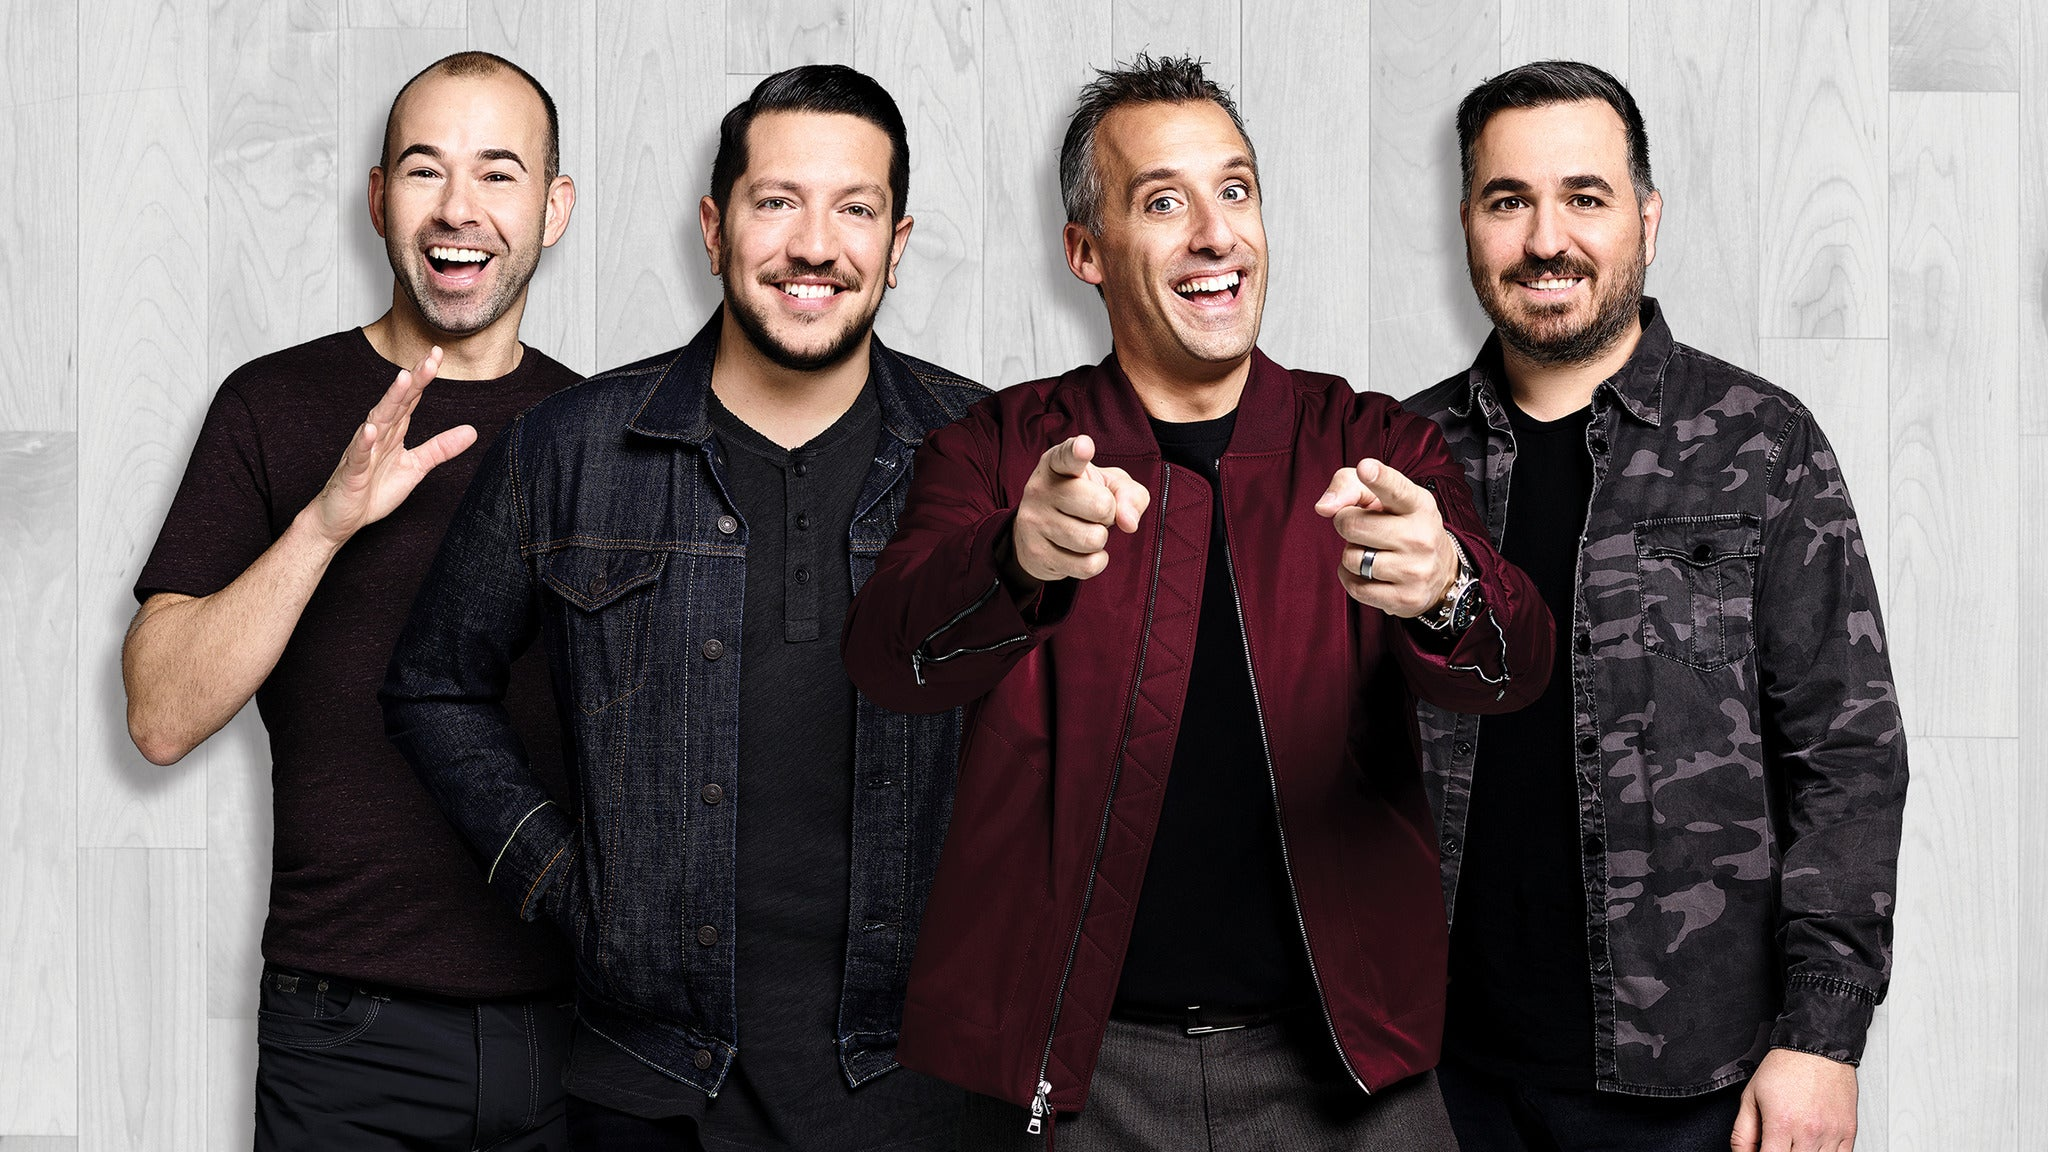 Universal Orlando Presents Impractical Jokers